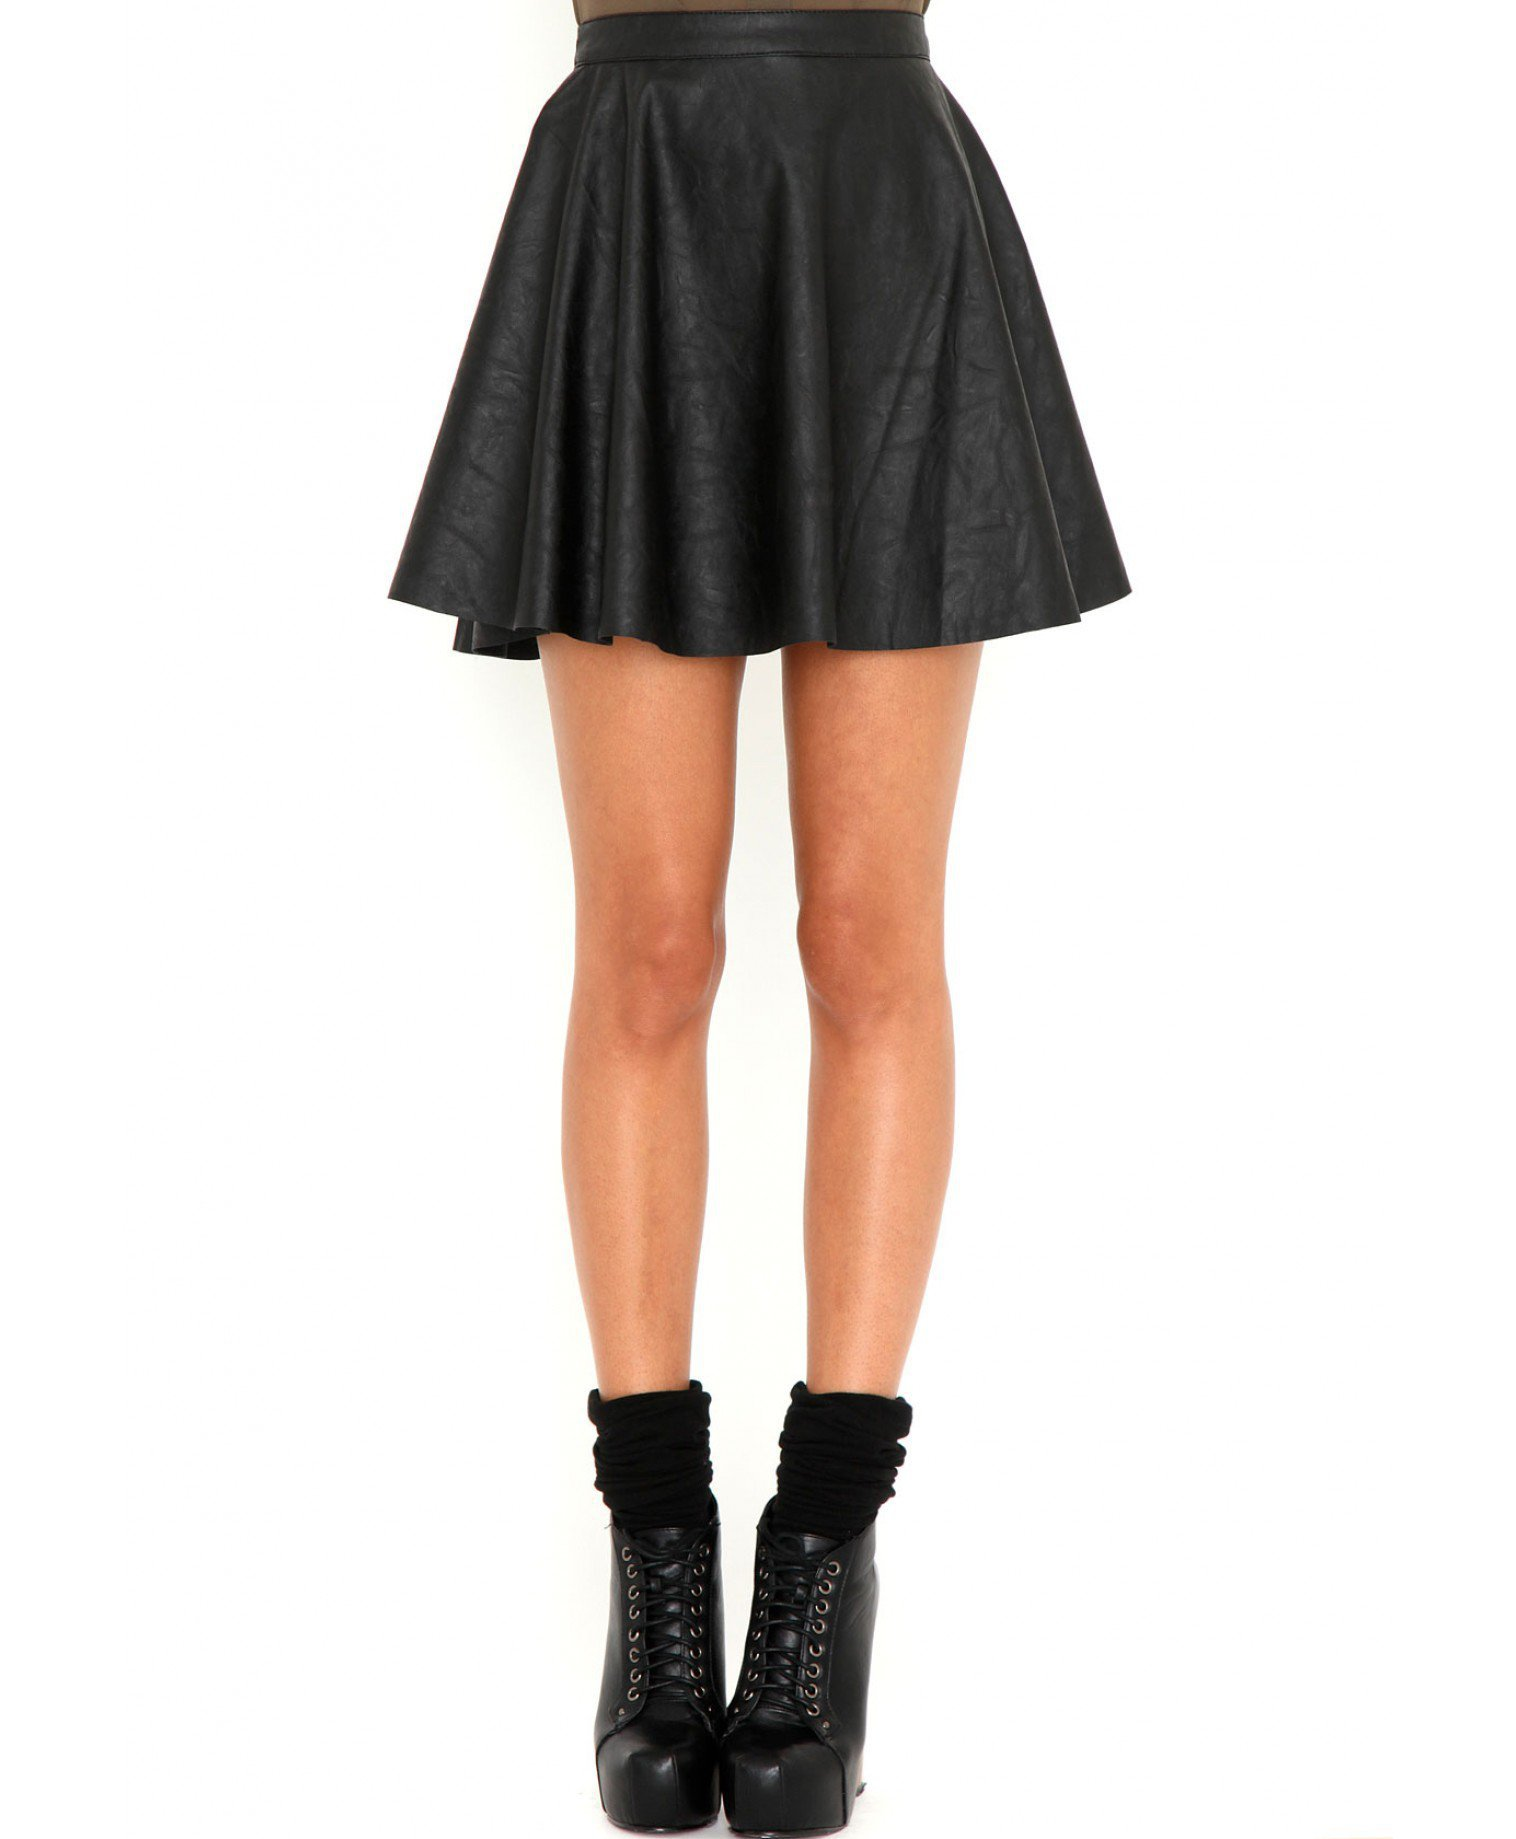 missguided emilie leather skater skirt from missguided